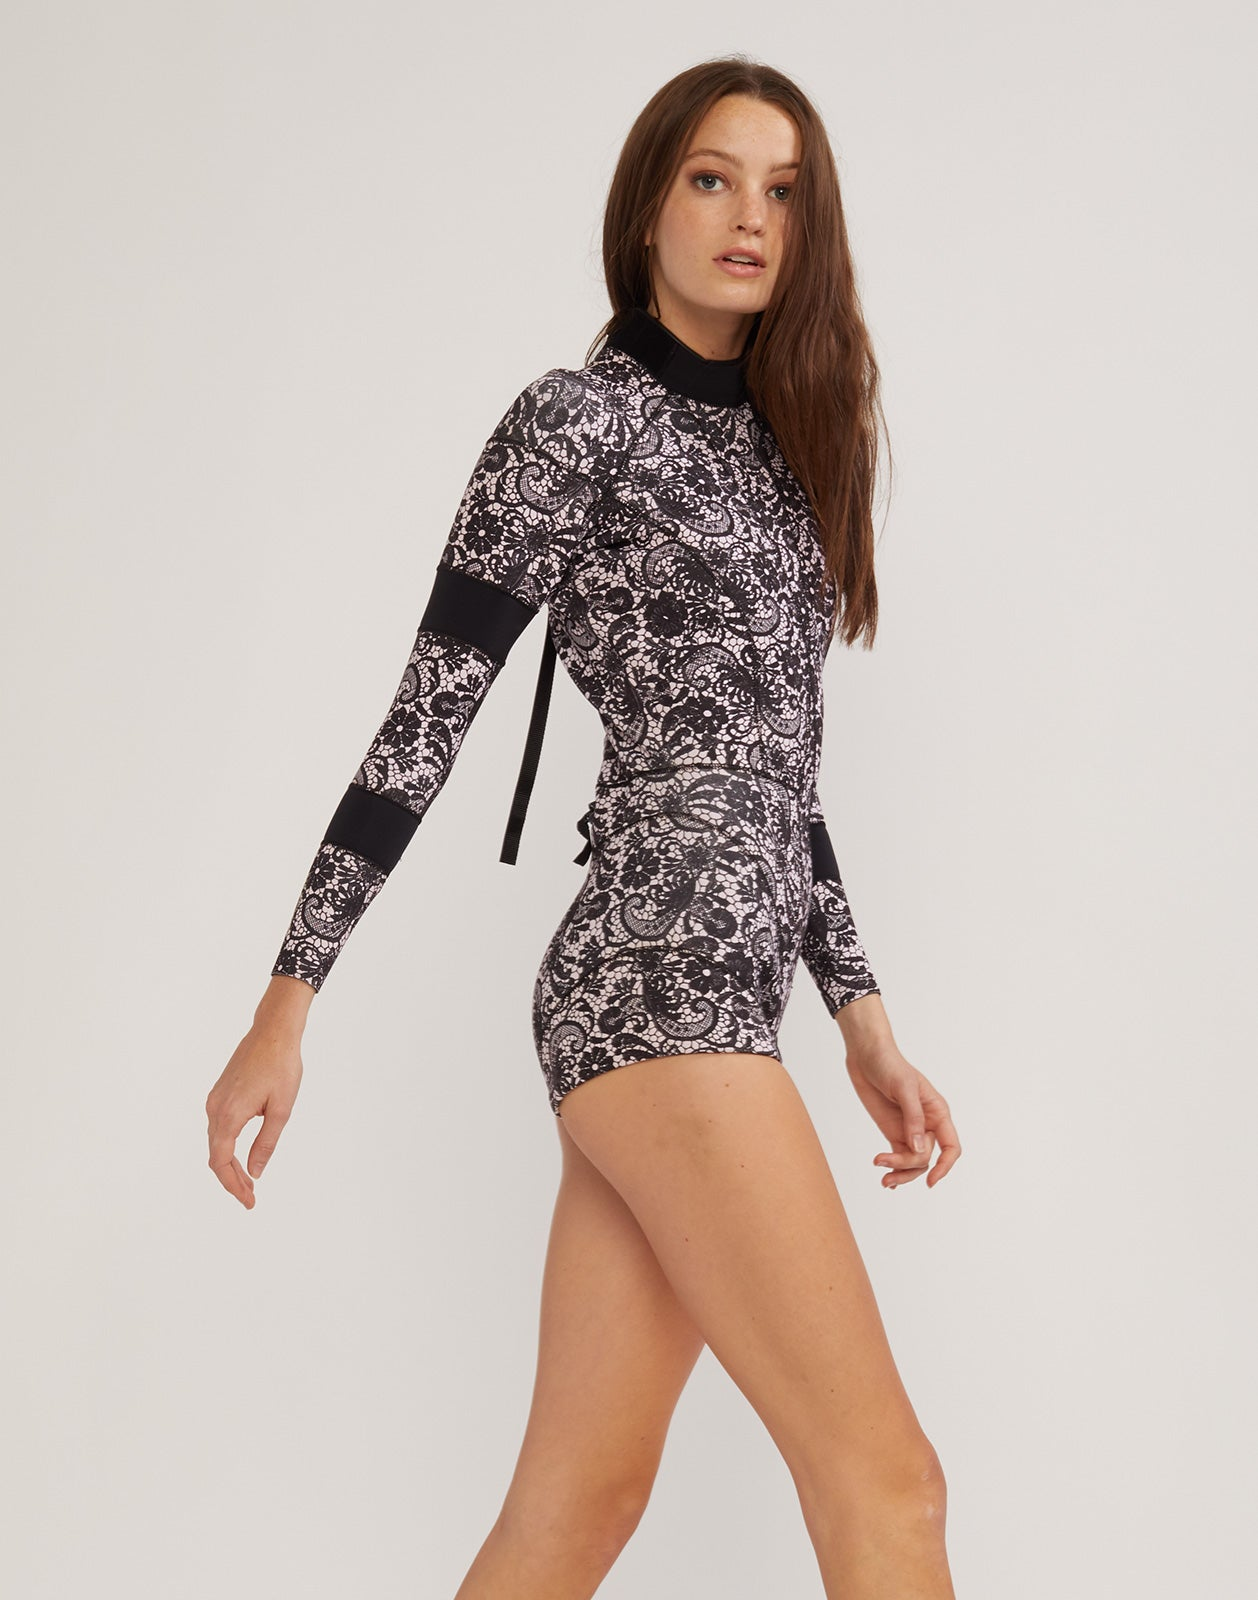 Right side view of the 2mm Fiber-Lite Neoprene wetsuit in black lace print with bonded seams.